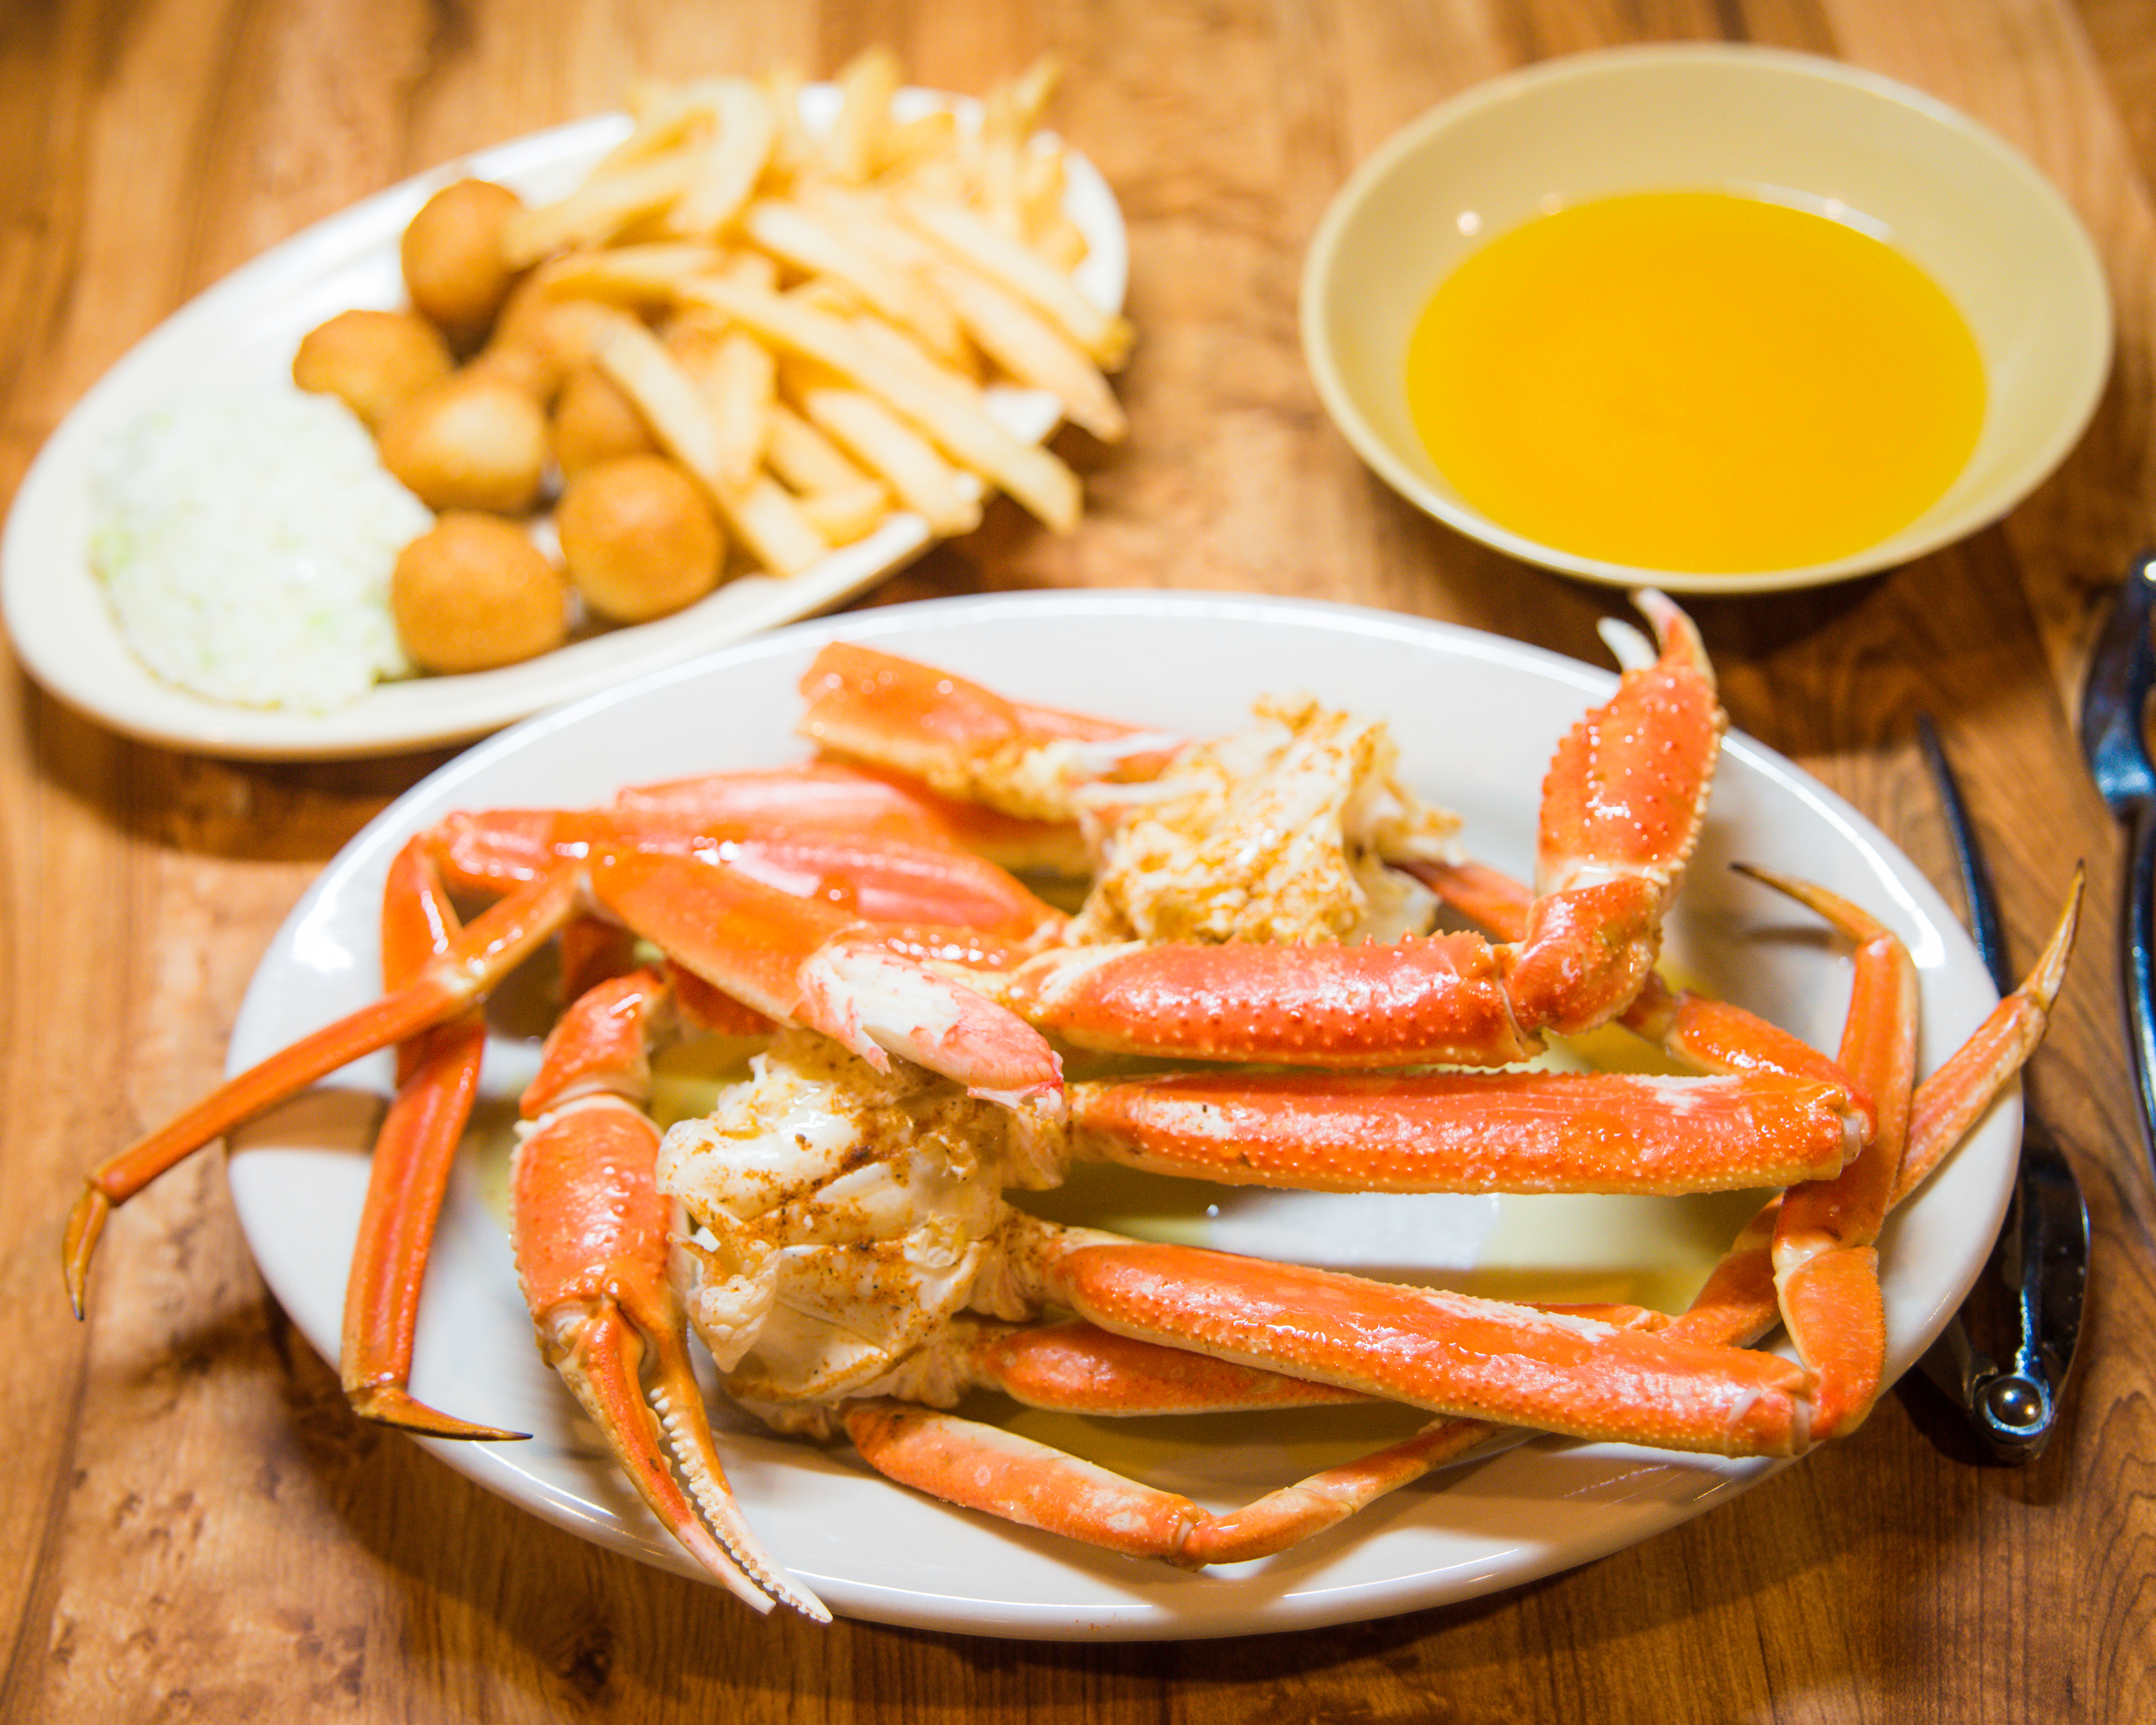 Dales Seafood Whiteville a (4)